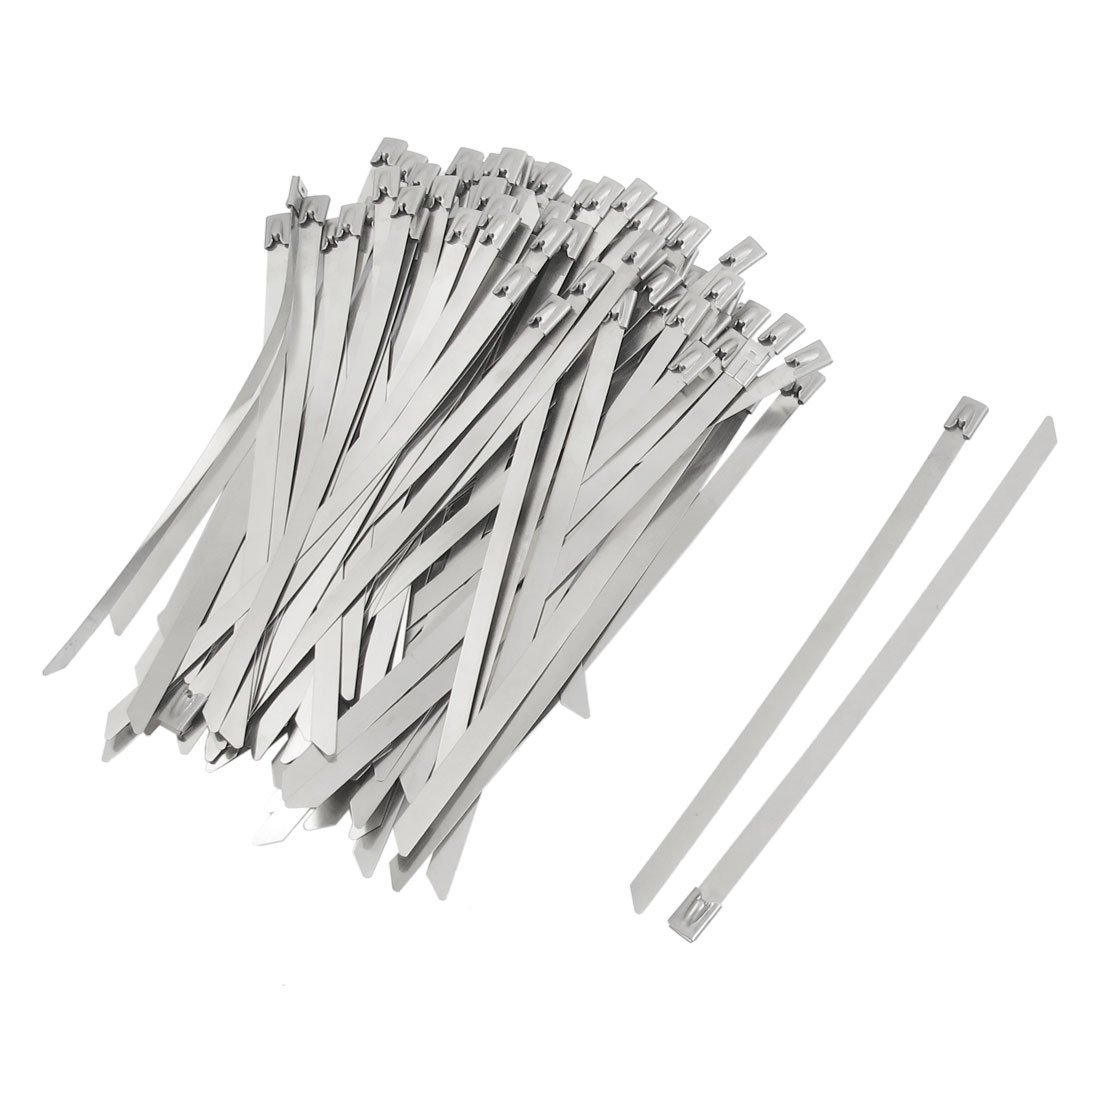 100 Piece Uxcell PVC Sprayed Self Locking Cable Pipe Ties//Hoops 8 x 200 mm